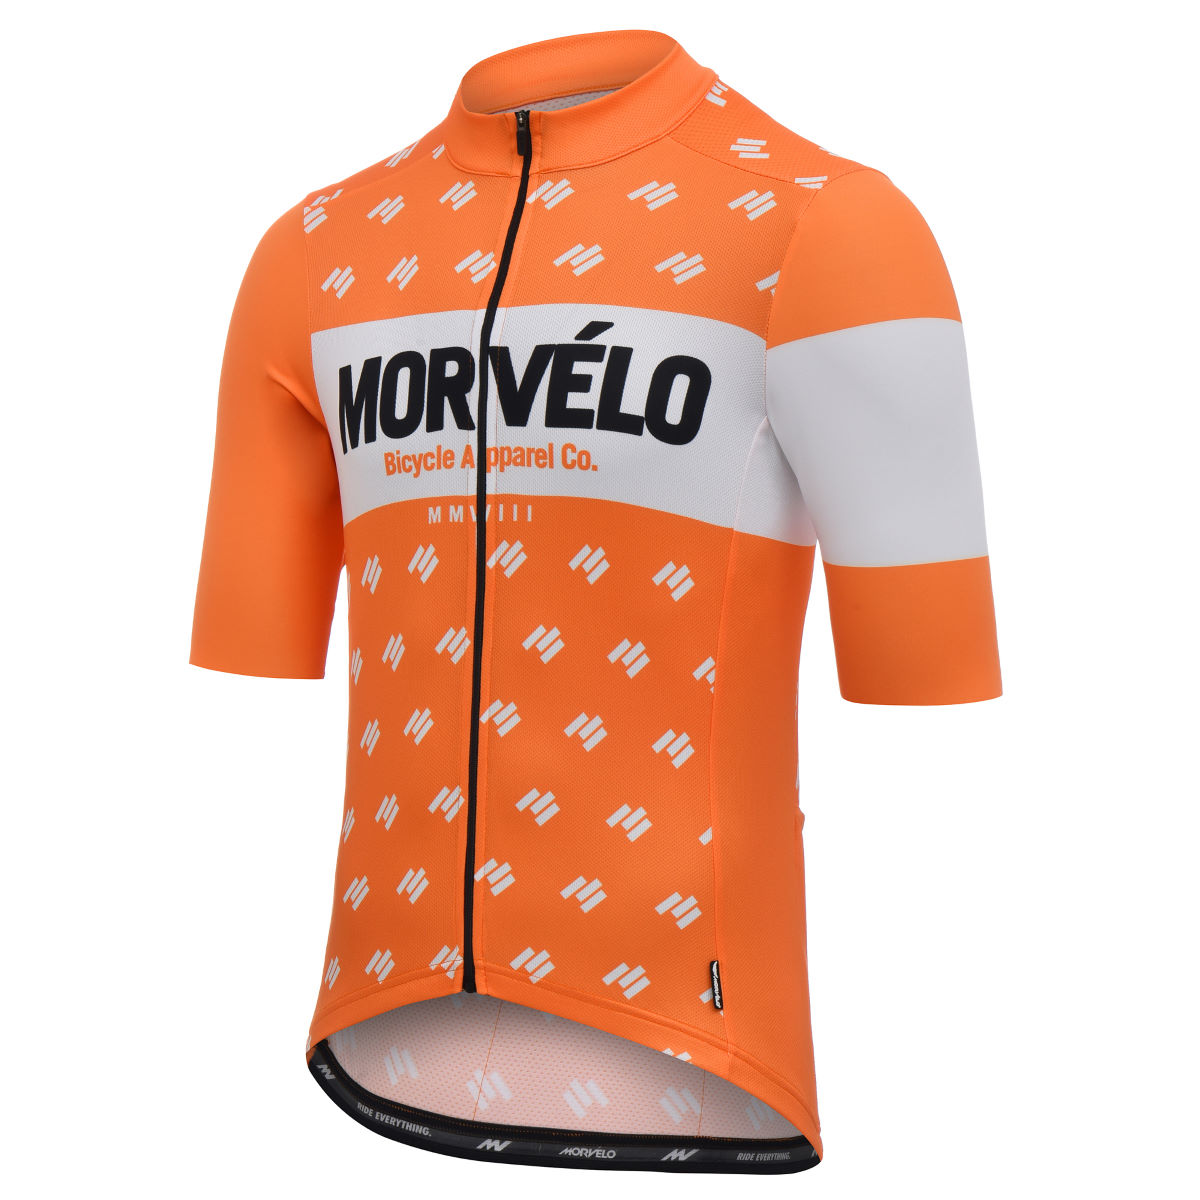 Maillot Morvélo 10 Year Celebration Ronde - Maillots